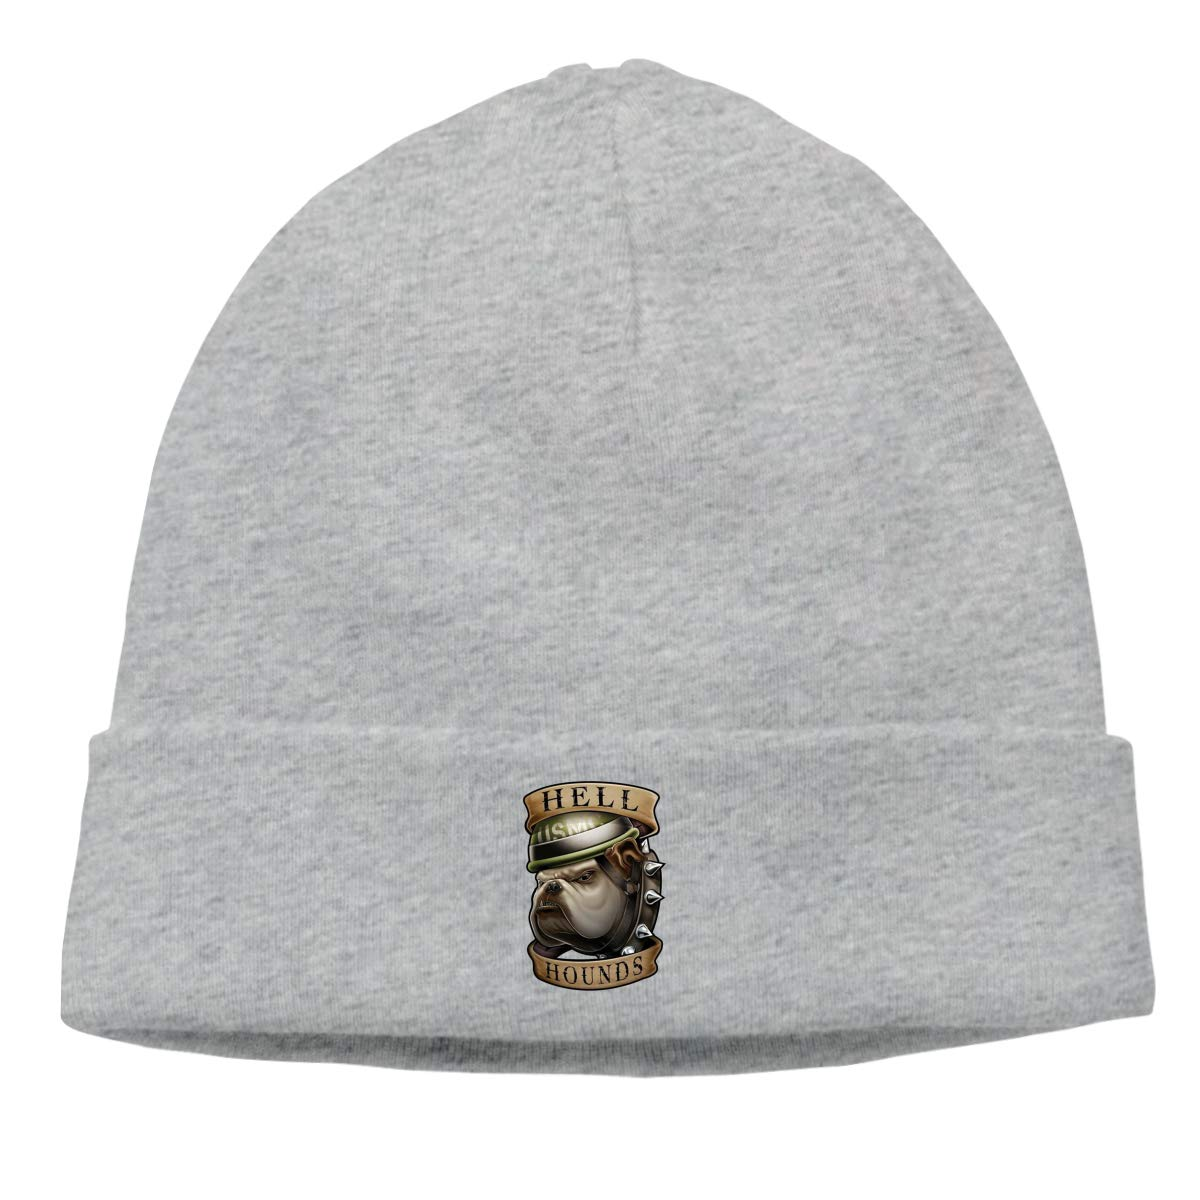 Black Ops Men /& Women Stretchy /& Soft Winter Beanie Hell Hounds